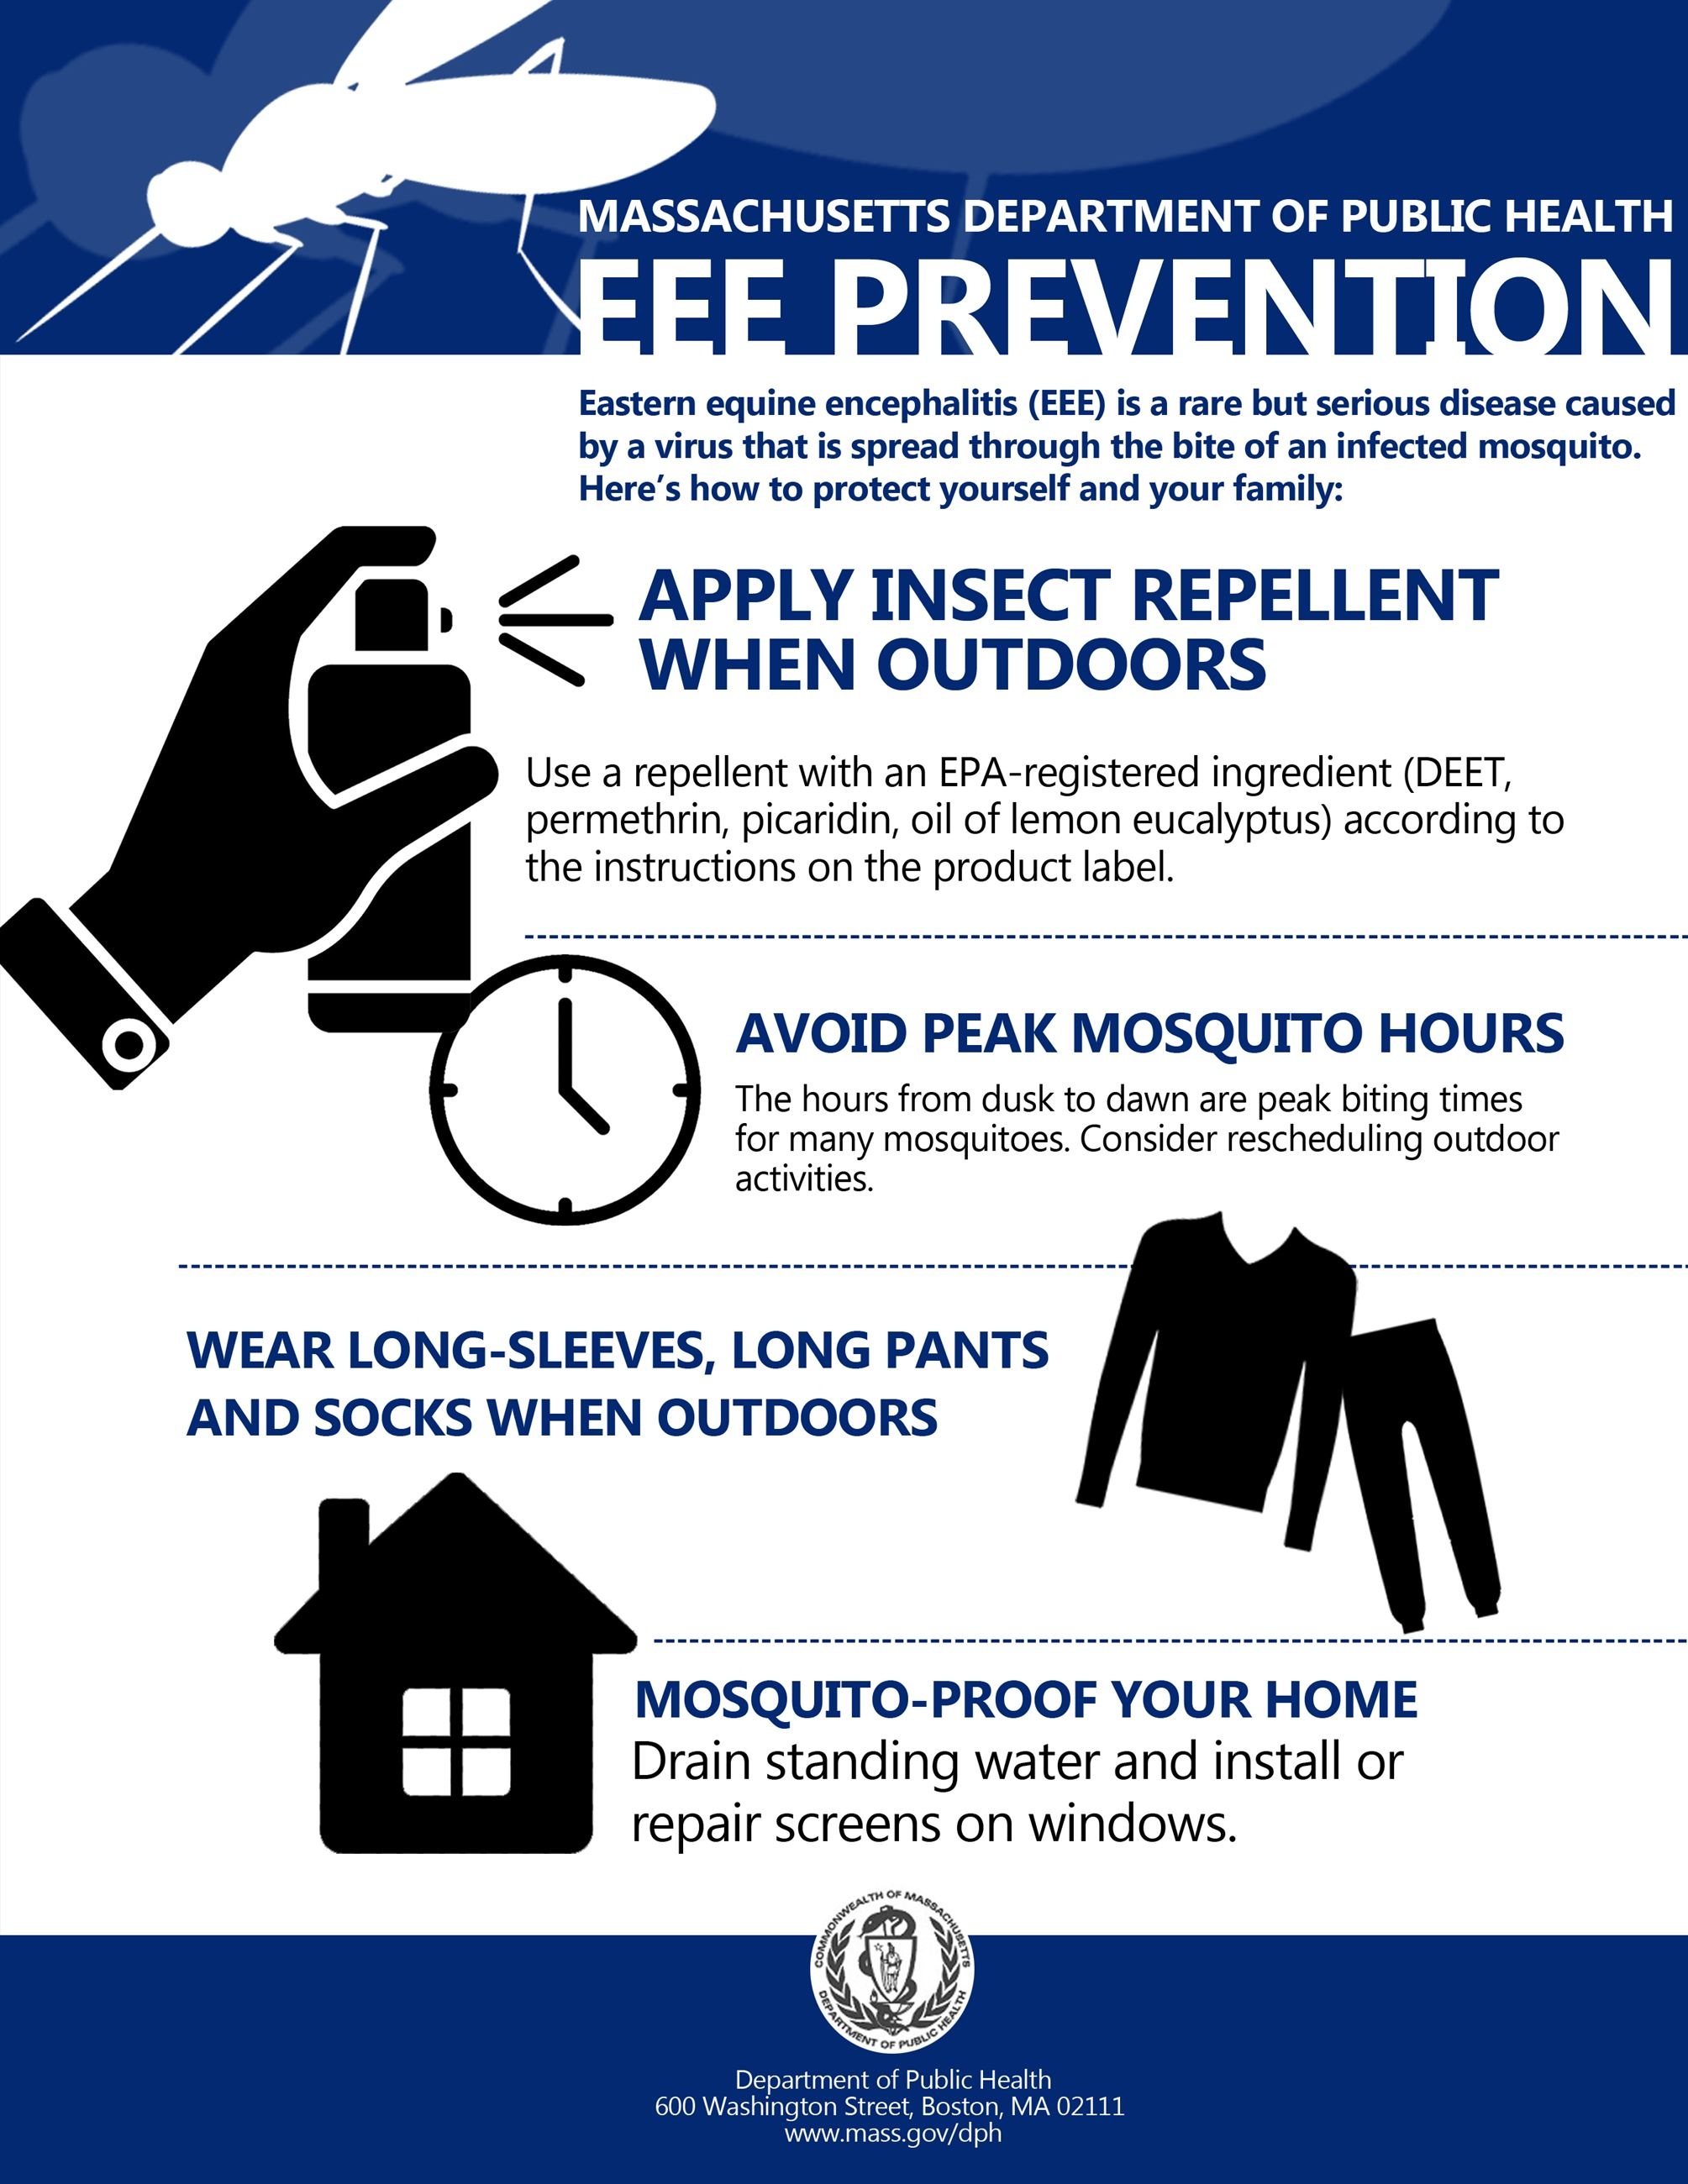 Eastern Equine Encephalitis (EEE) Handout Image. Protect yourself against this virus.